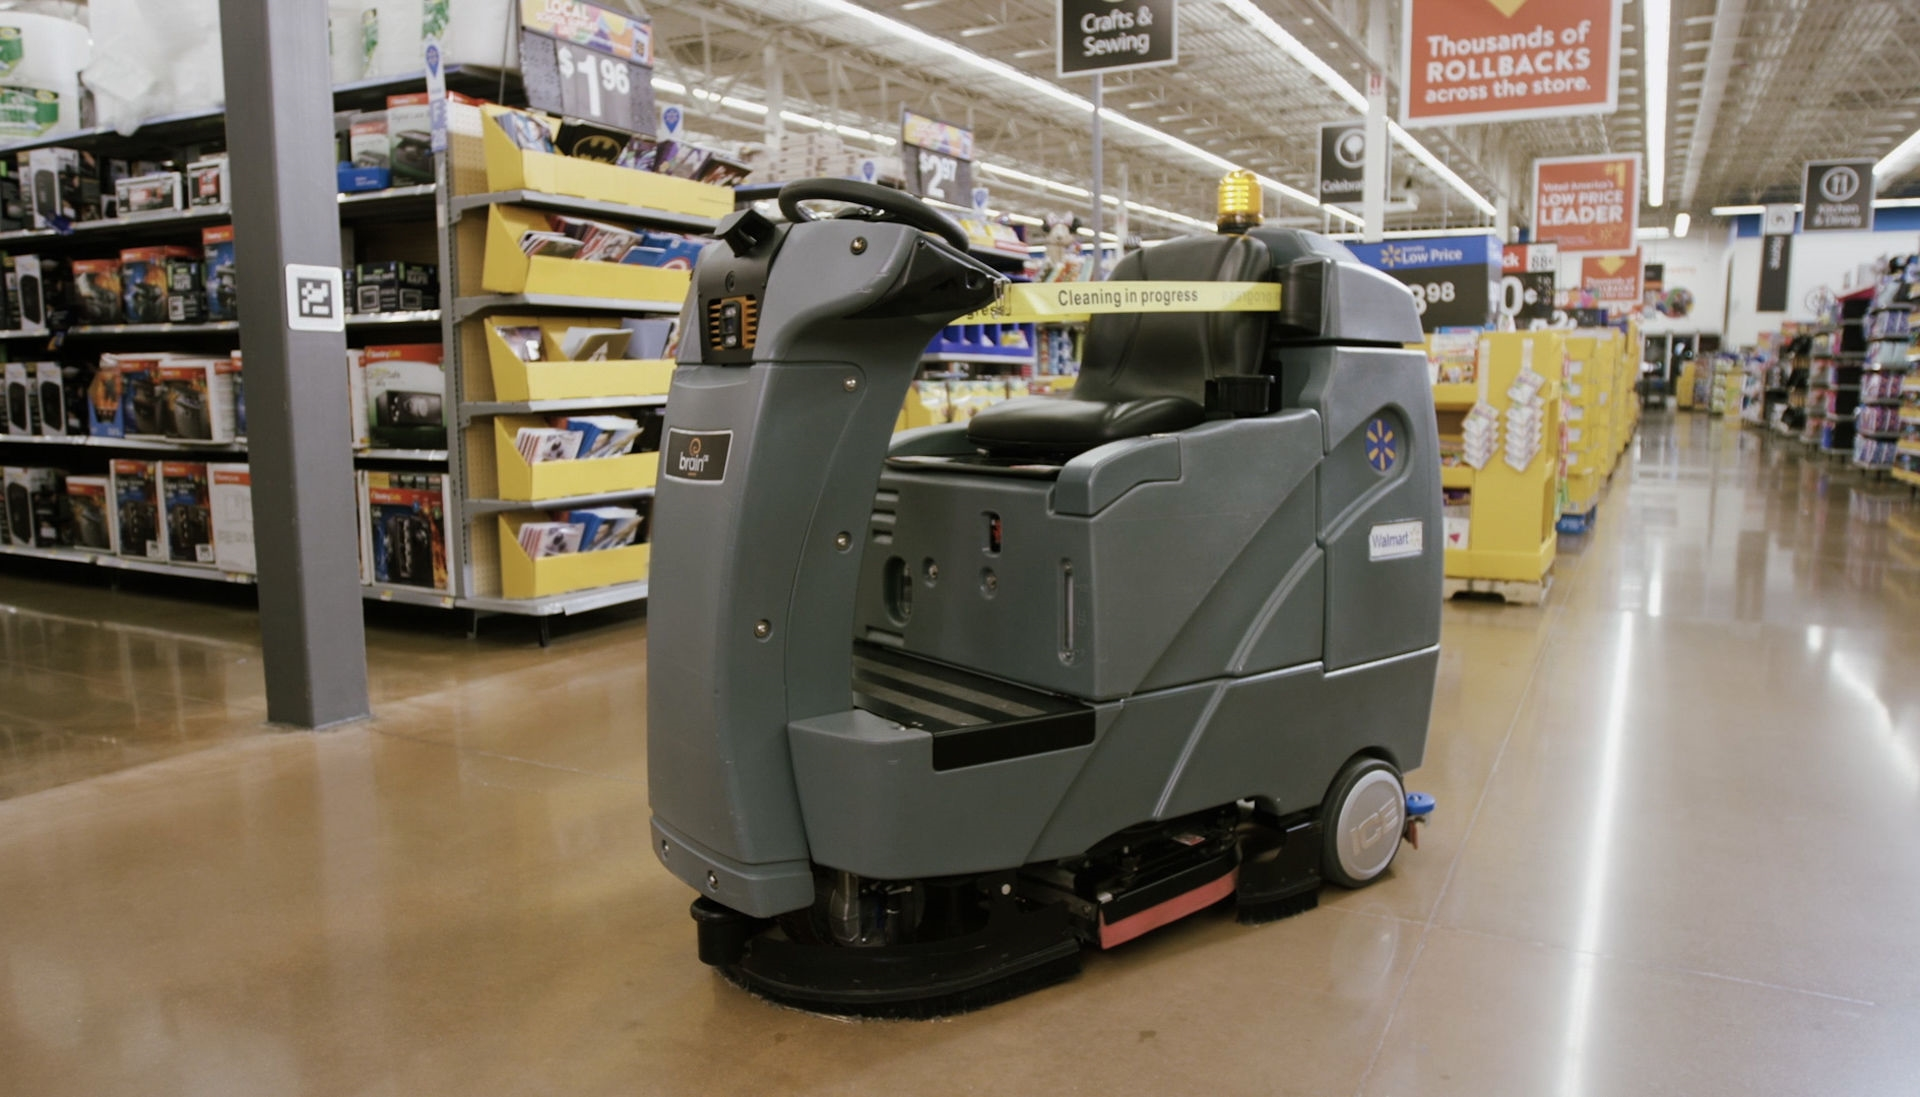 Walmart battles online retail by adding more robots to its stores | DeviceDaily.com